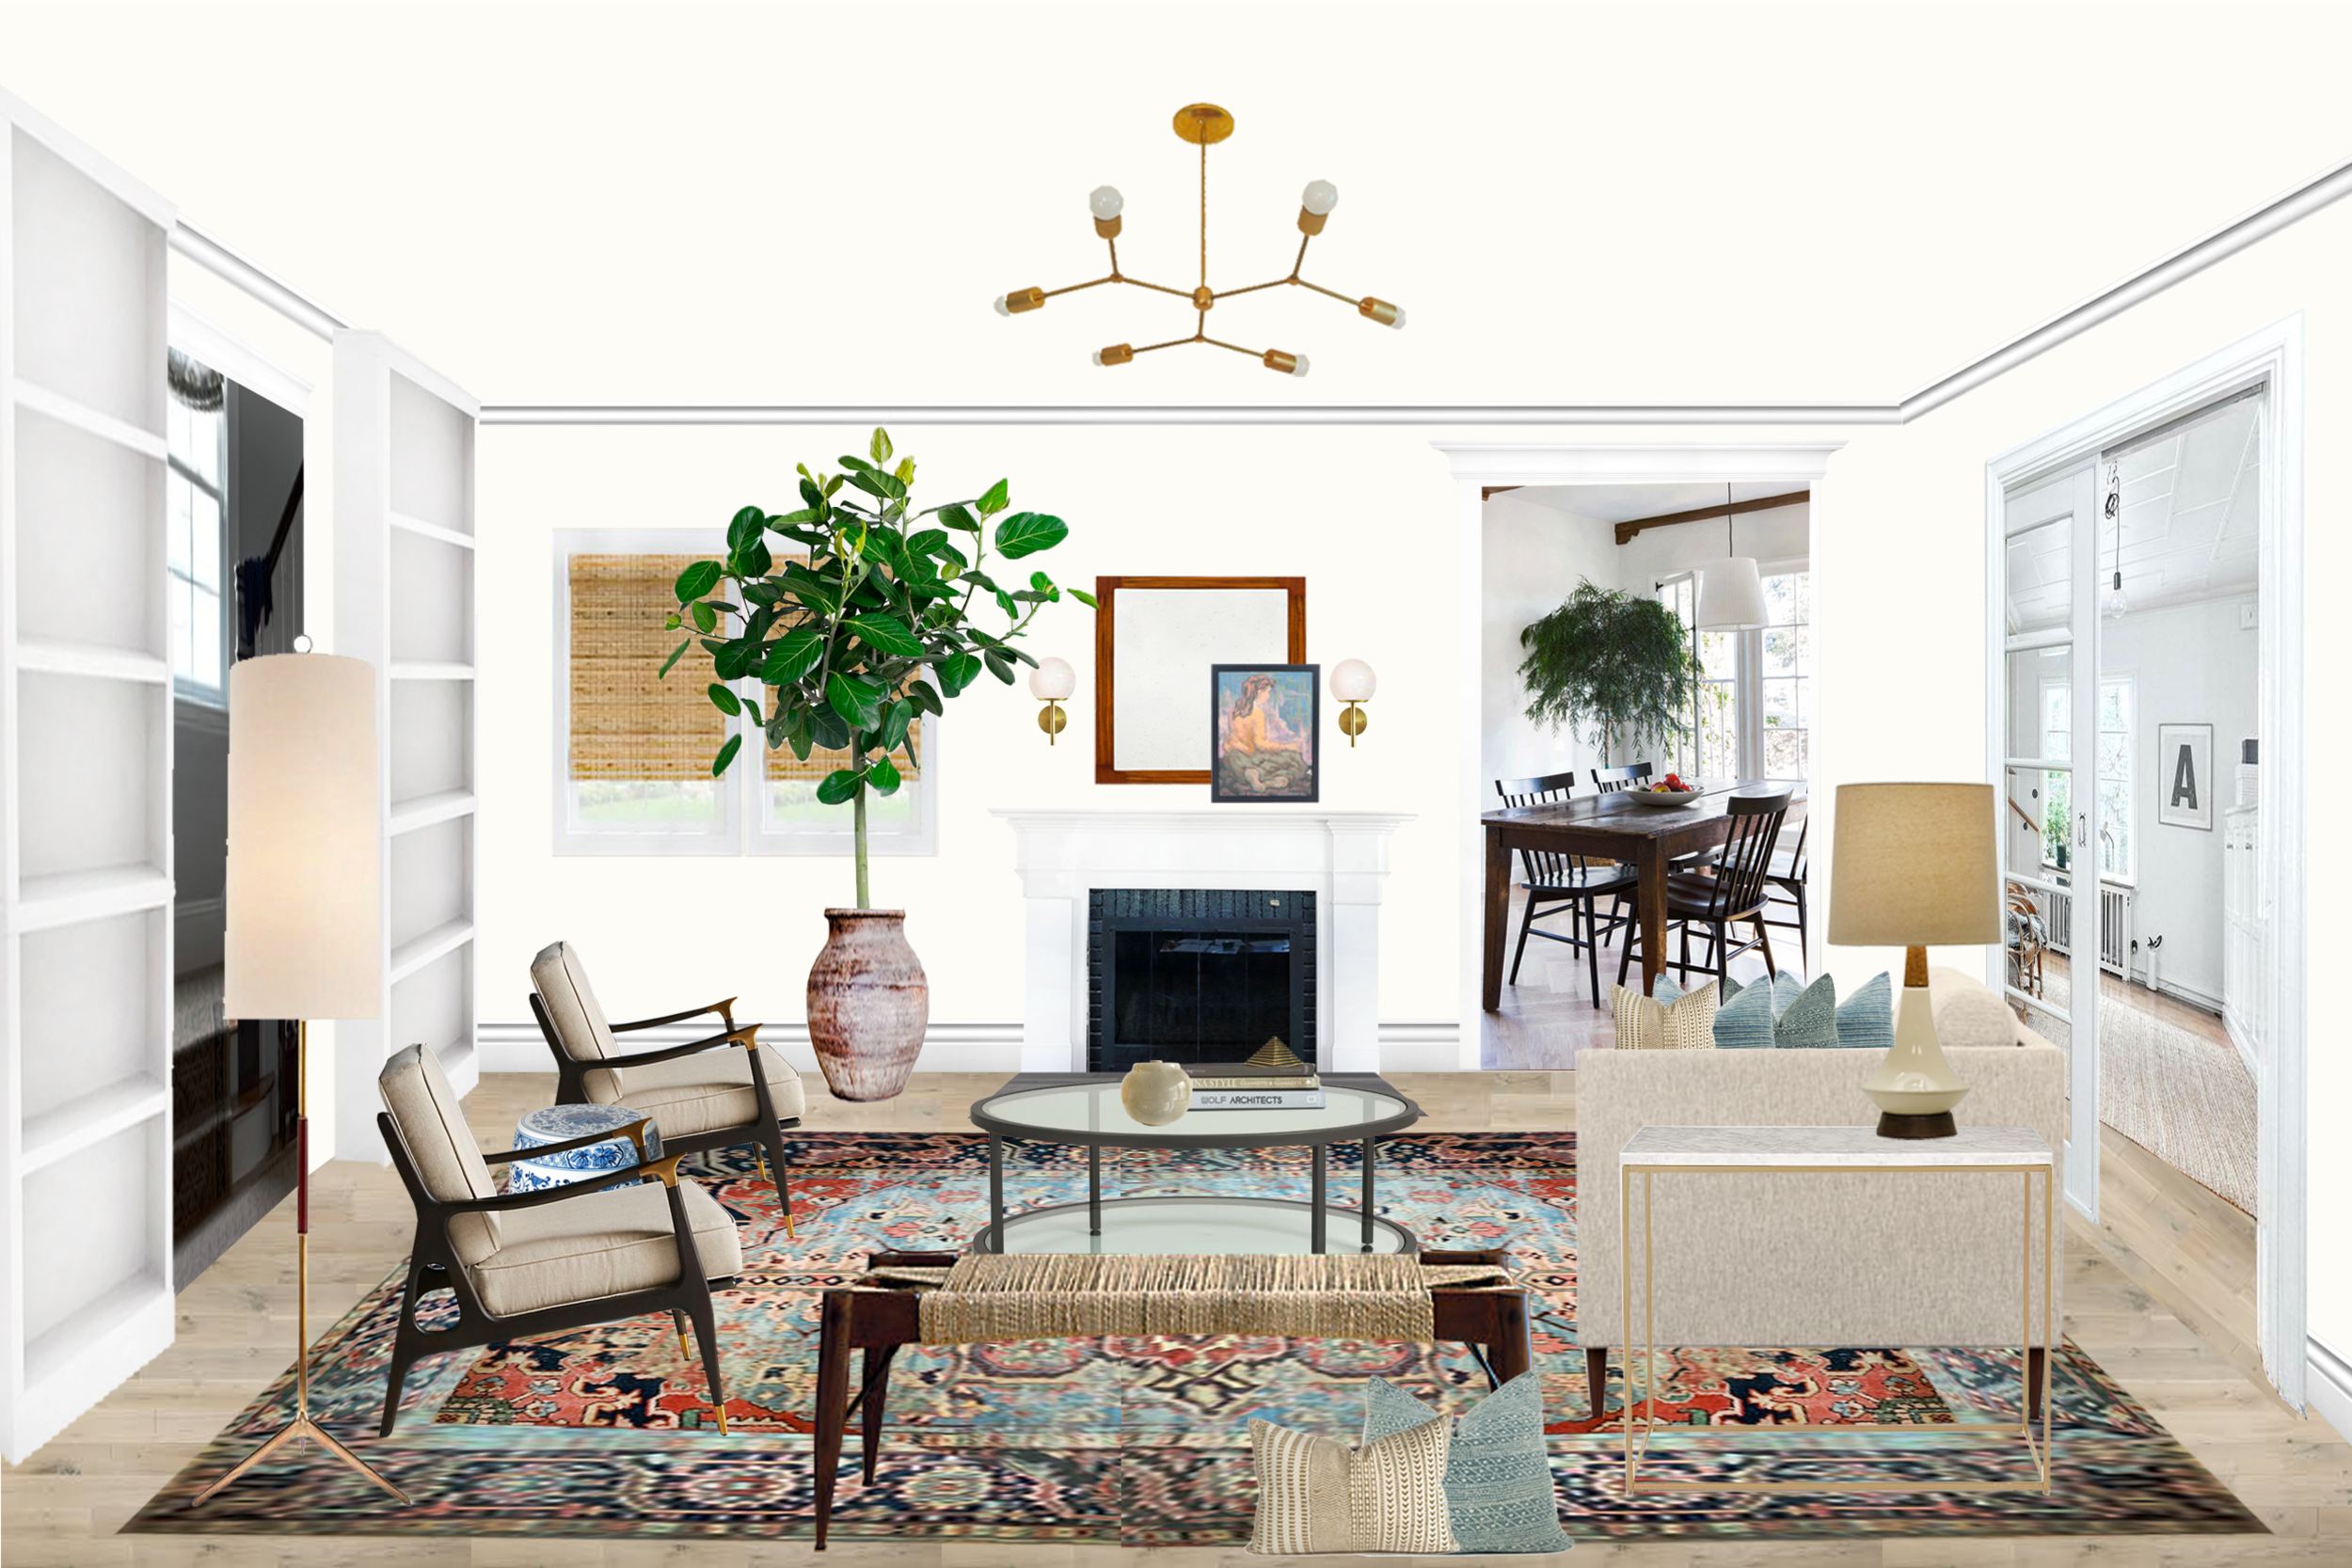 Annabel's living room rendering for a recent client. That vibrant, vintage rug is the true showstopper in the room! These clients are sure to get lots of ogling next time they have friends over!